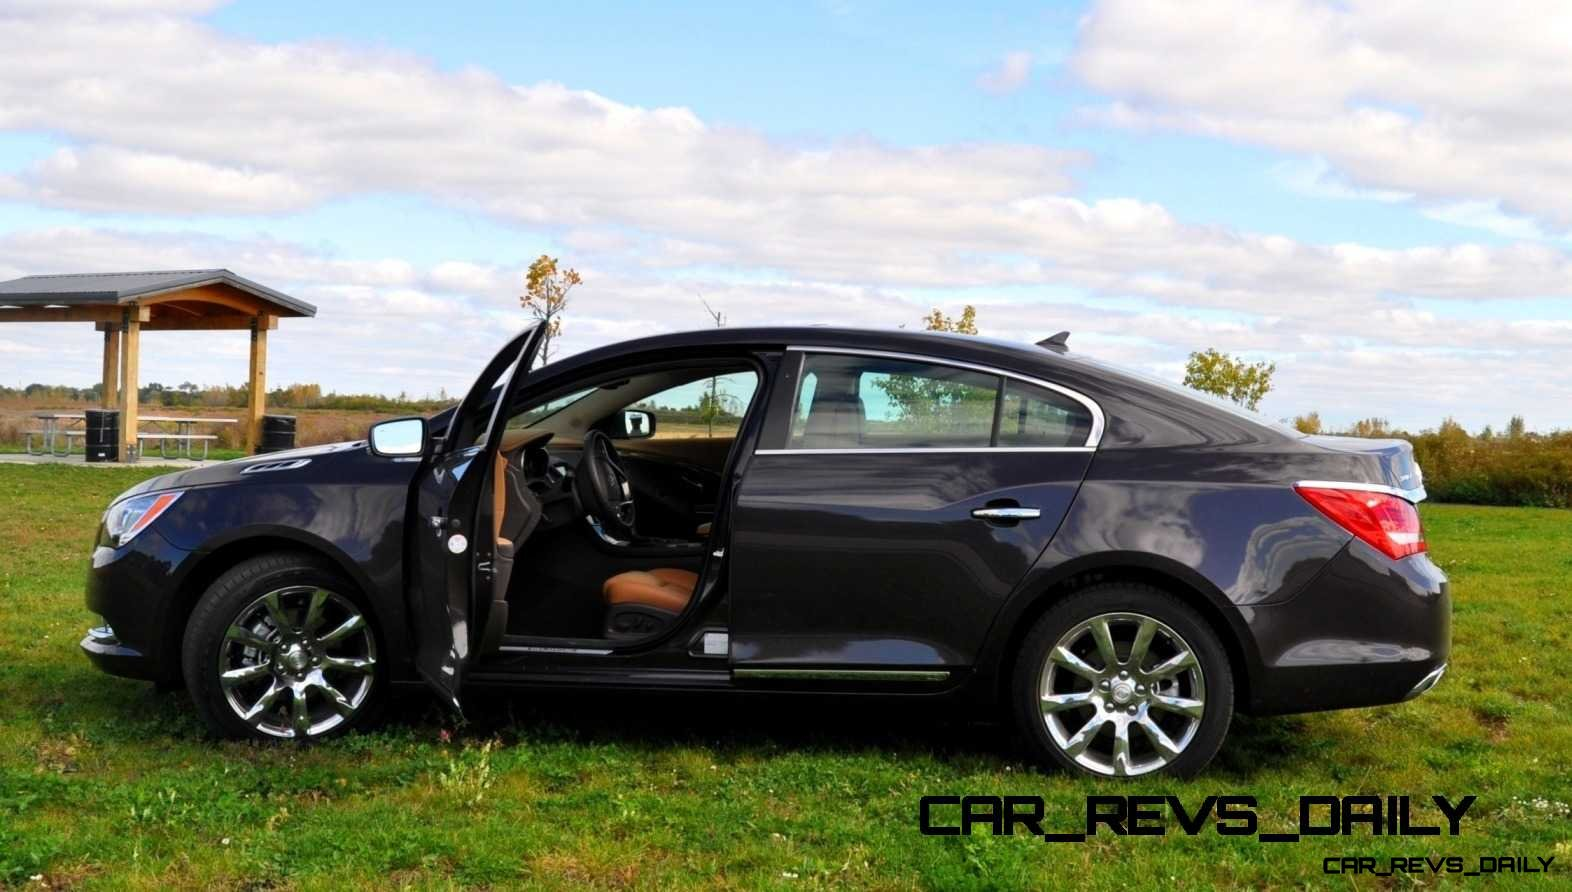 Driven Car Review - 2014 Buick LaCrosse Is Huge, Smooth and Silent3